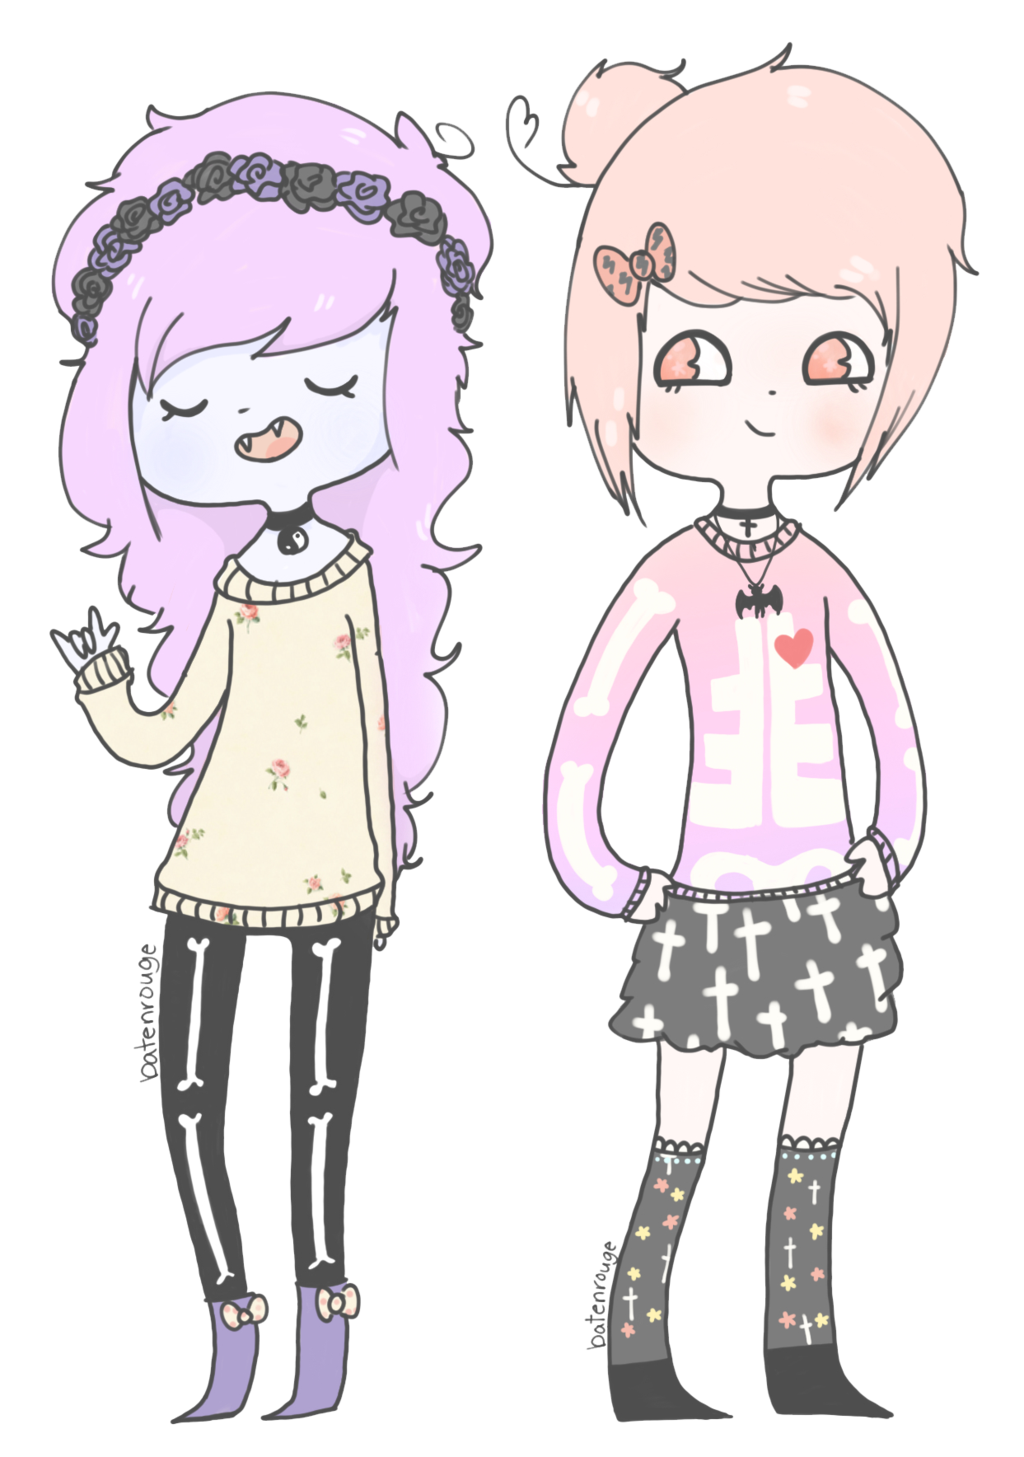 Drawing friendship bestfriend. Tumblr drawings for your